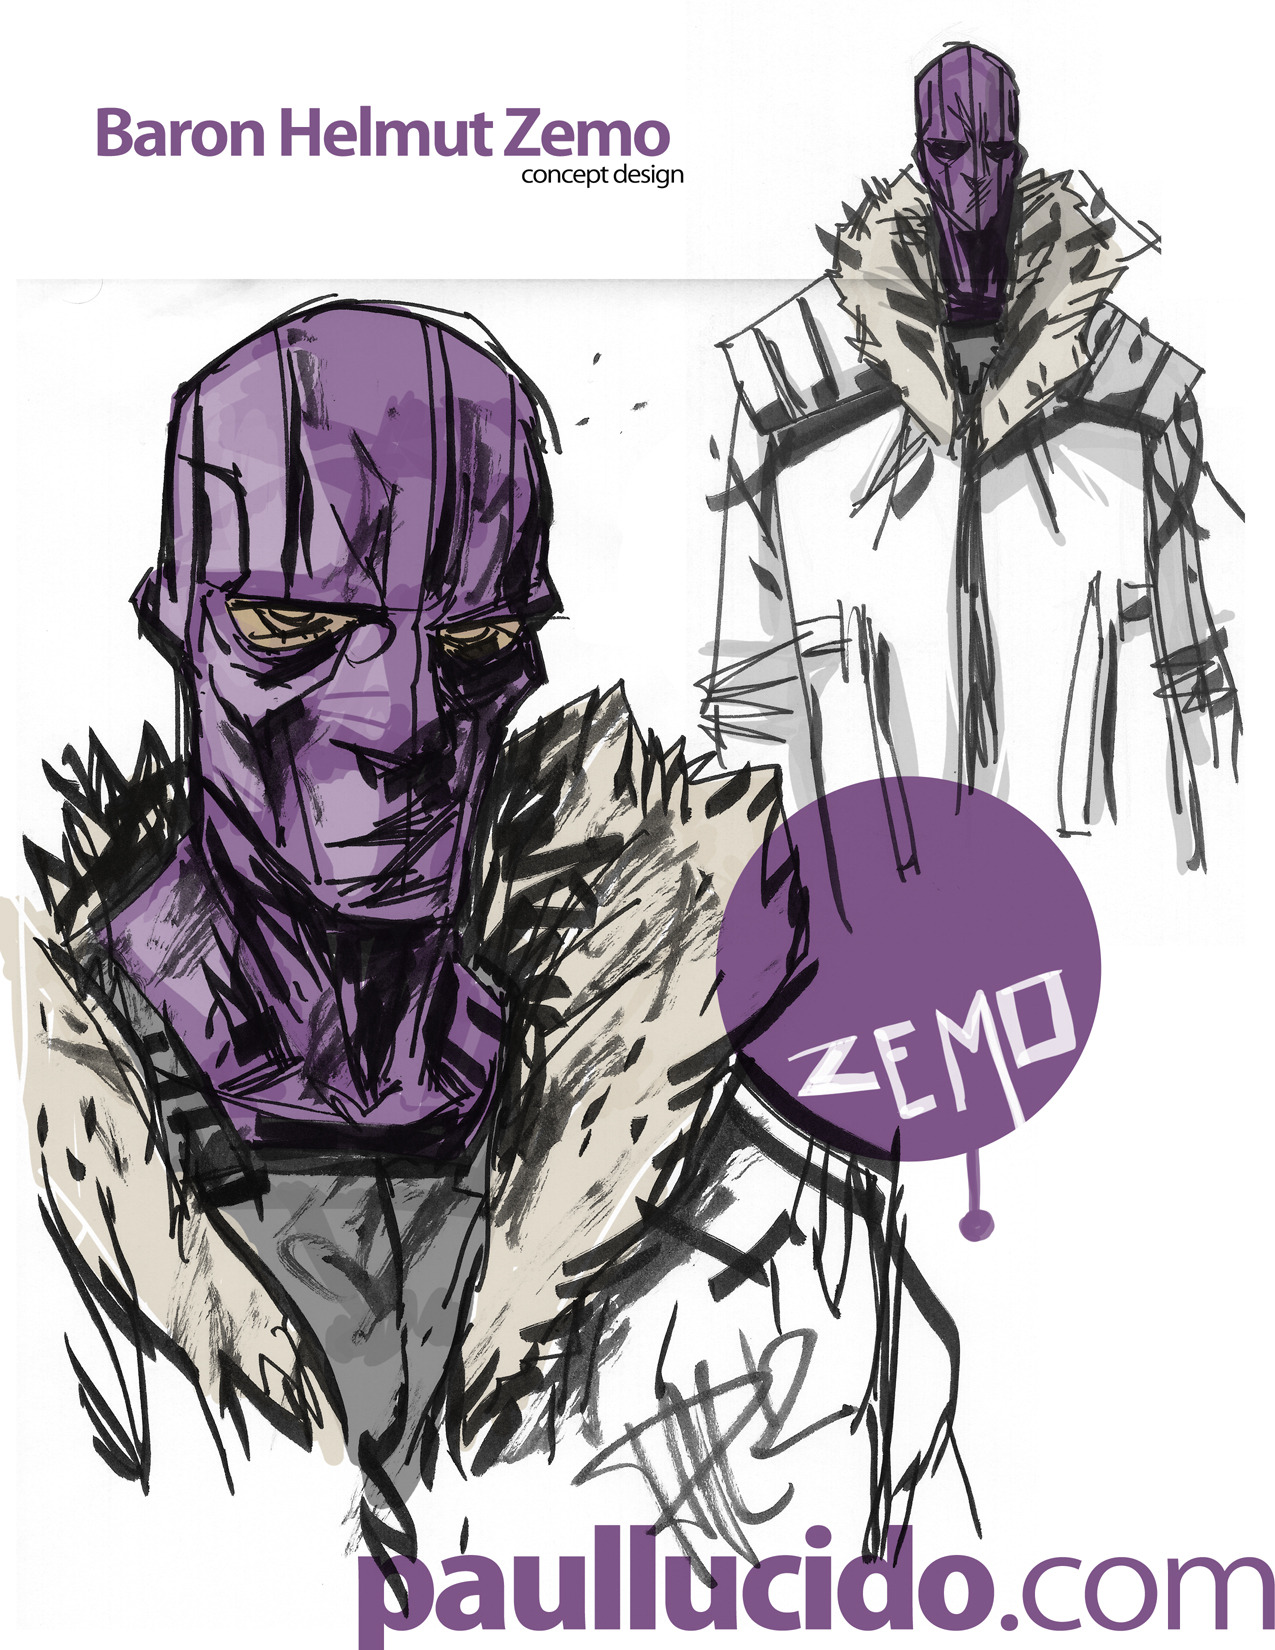 My concept for Baron Helmut Zemo